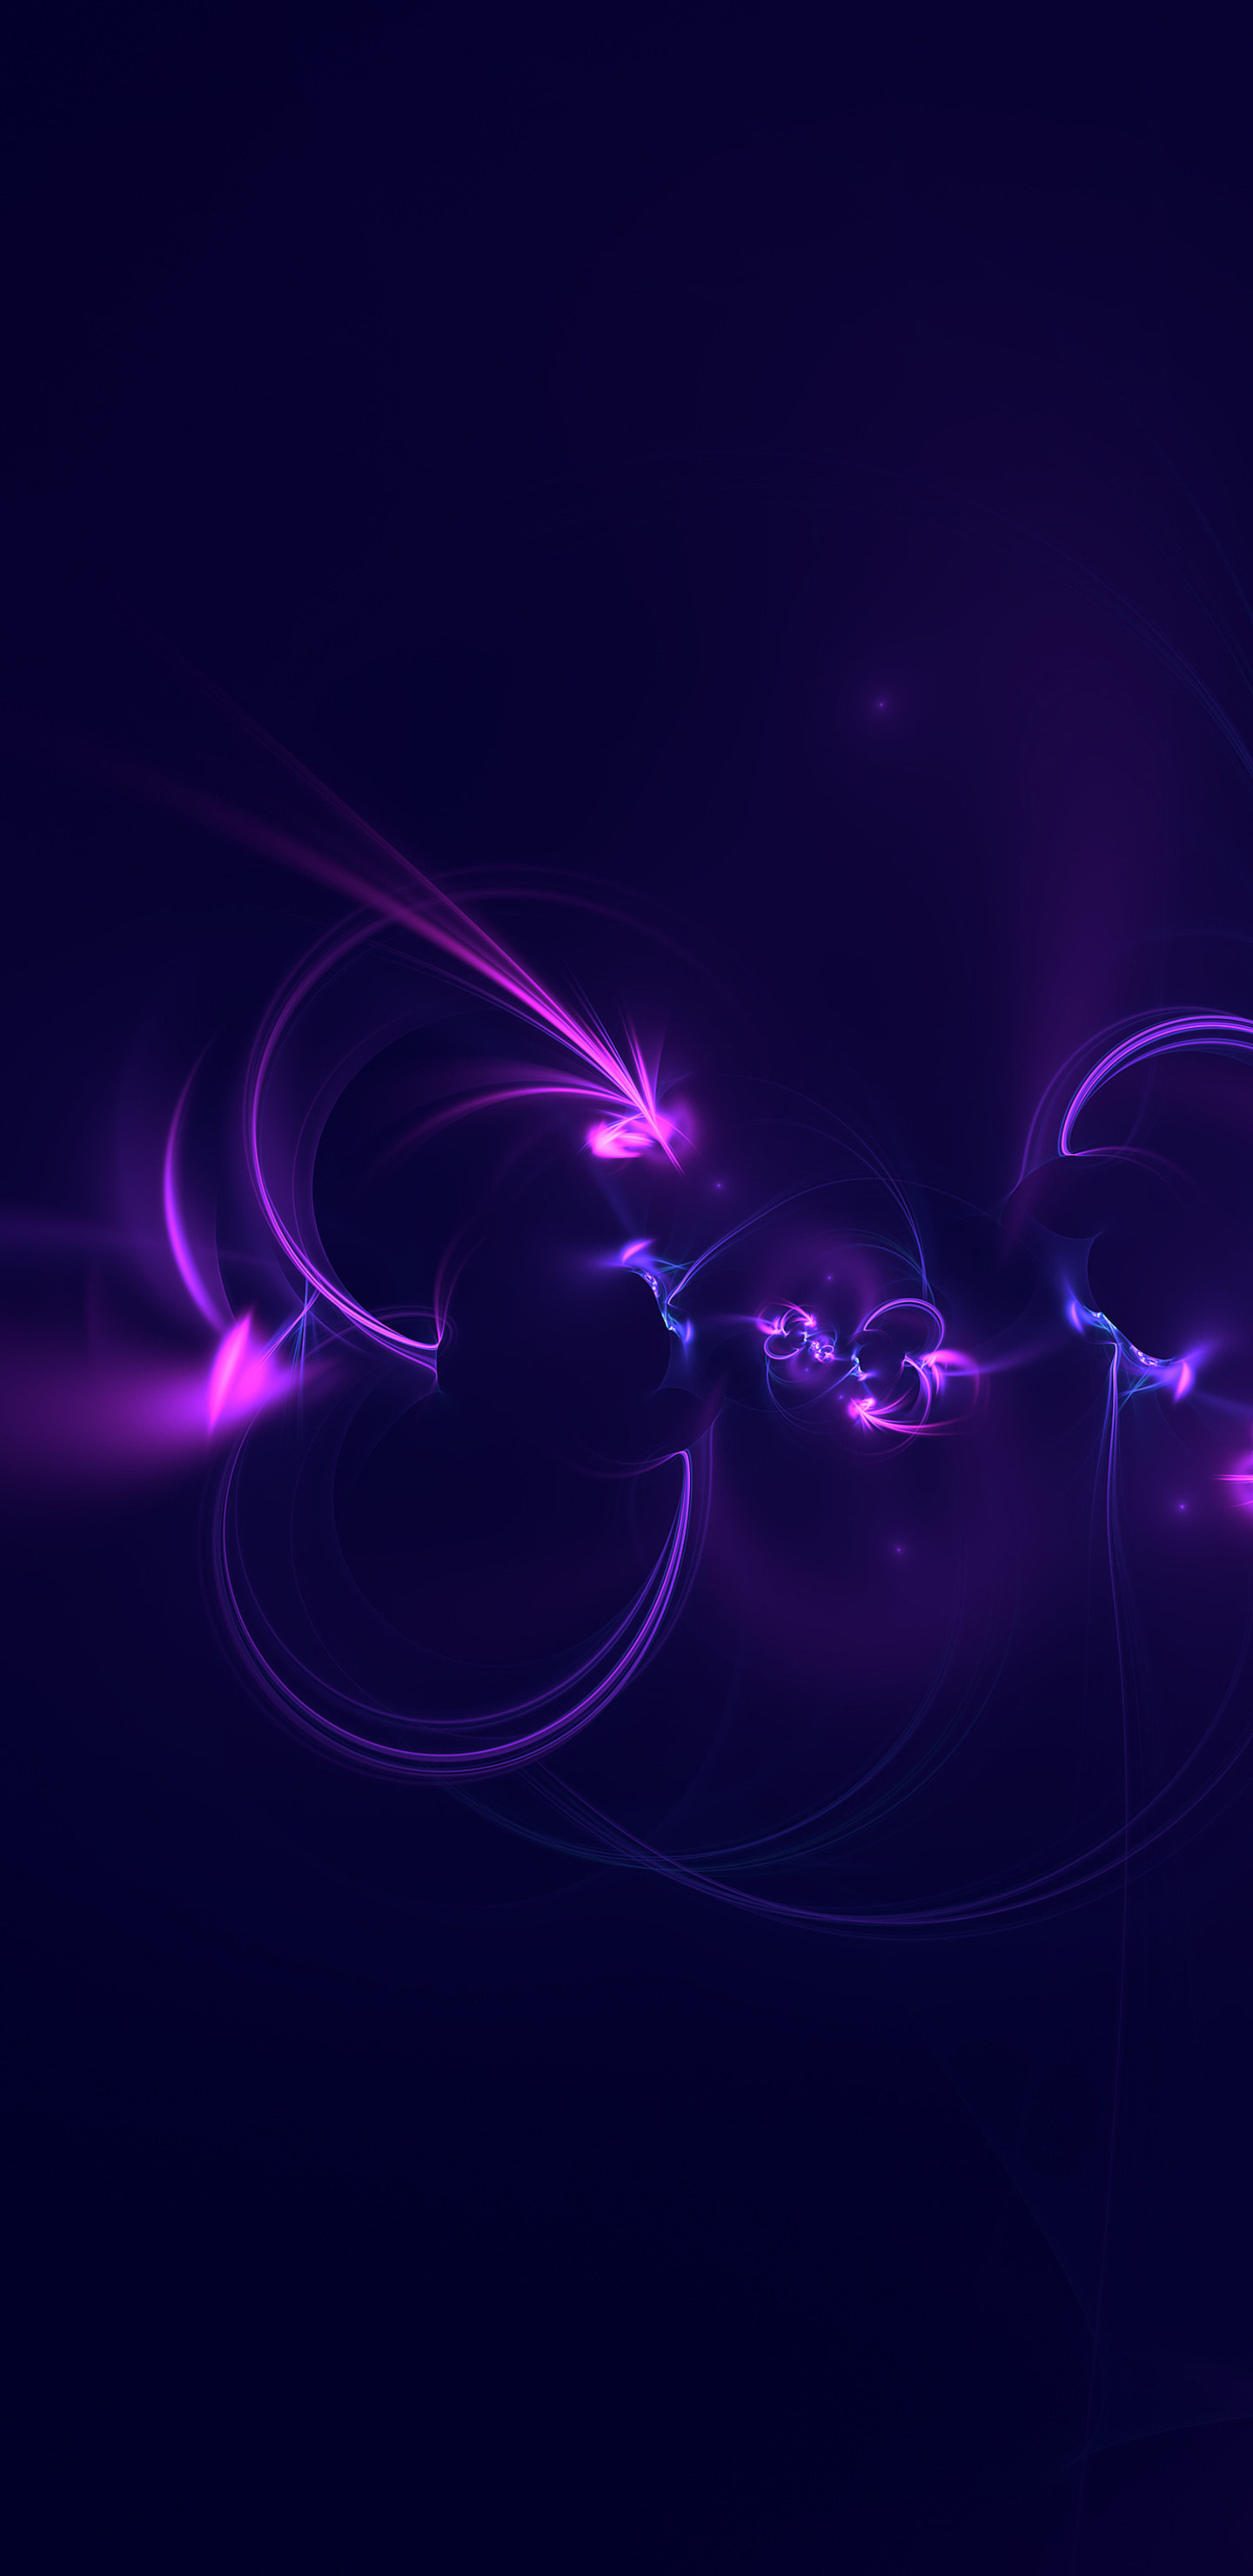 1440x2960 Abstract Digital Art Purple Background 5k Samsung Galaxy Note 9 8 S9 S8 S8 Qhd Hd 4k Wallpapers Images Backgrounds Photos And Pictures